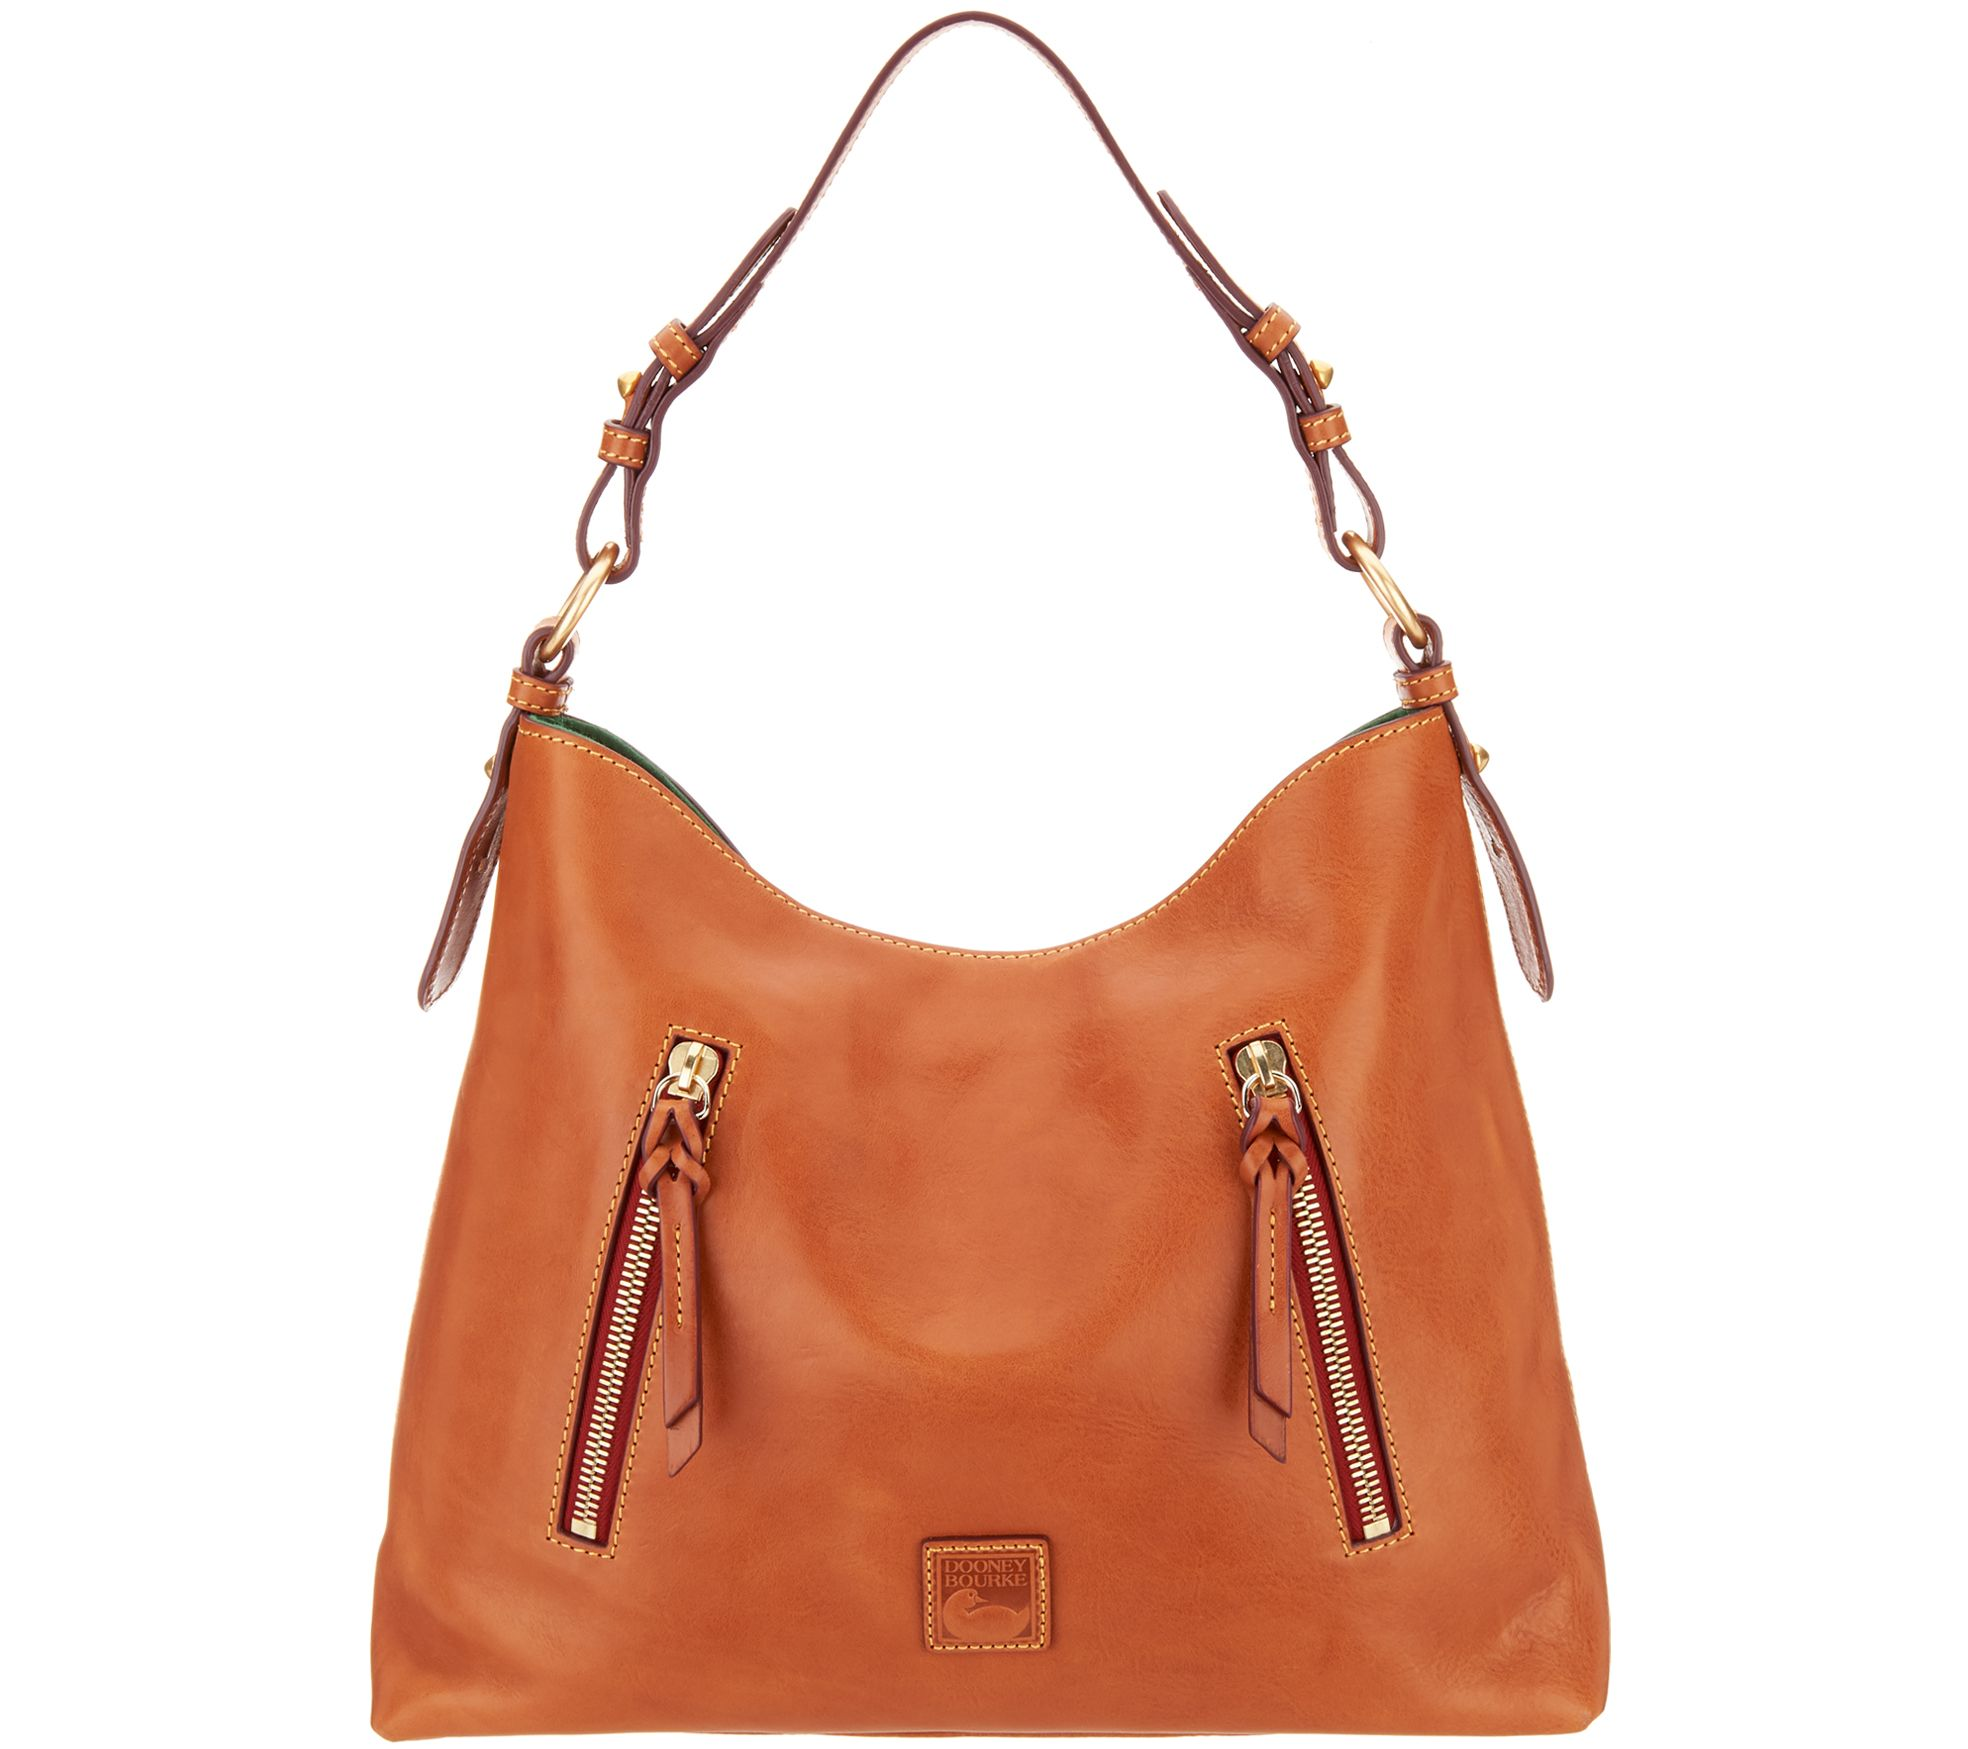 463620527db7 Dooney   Bourke Florentine Leather Hobo - Cooper - Page 1 — QVC.com